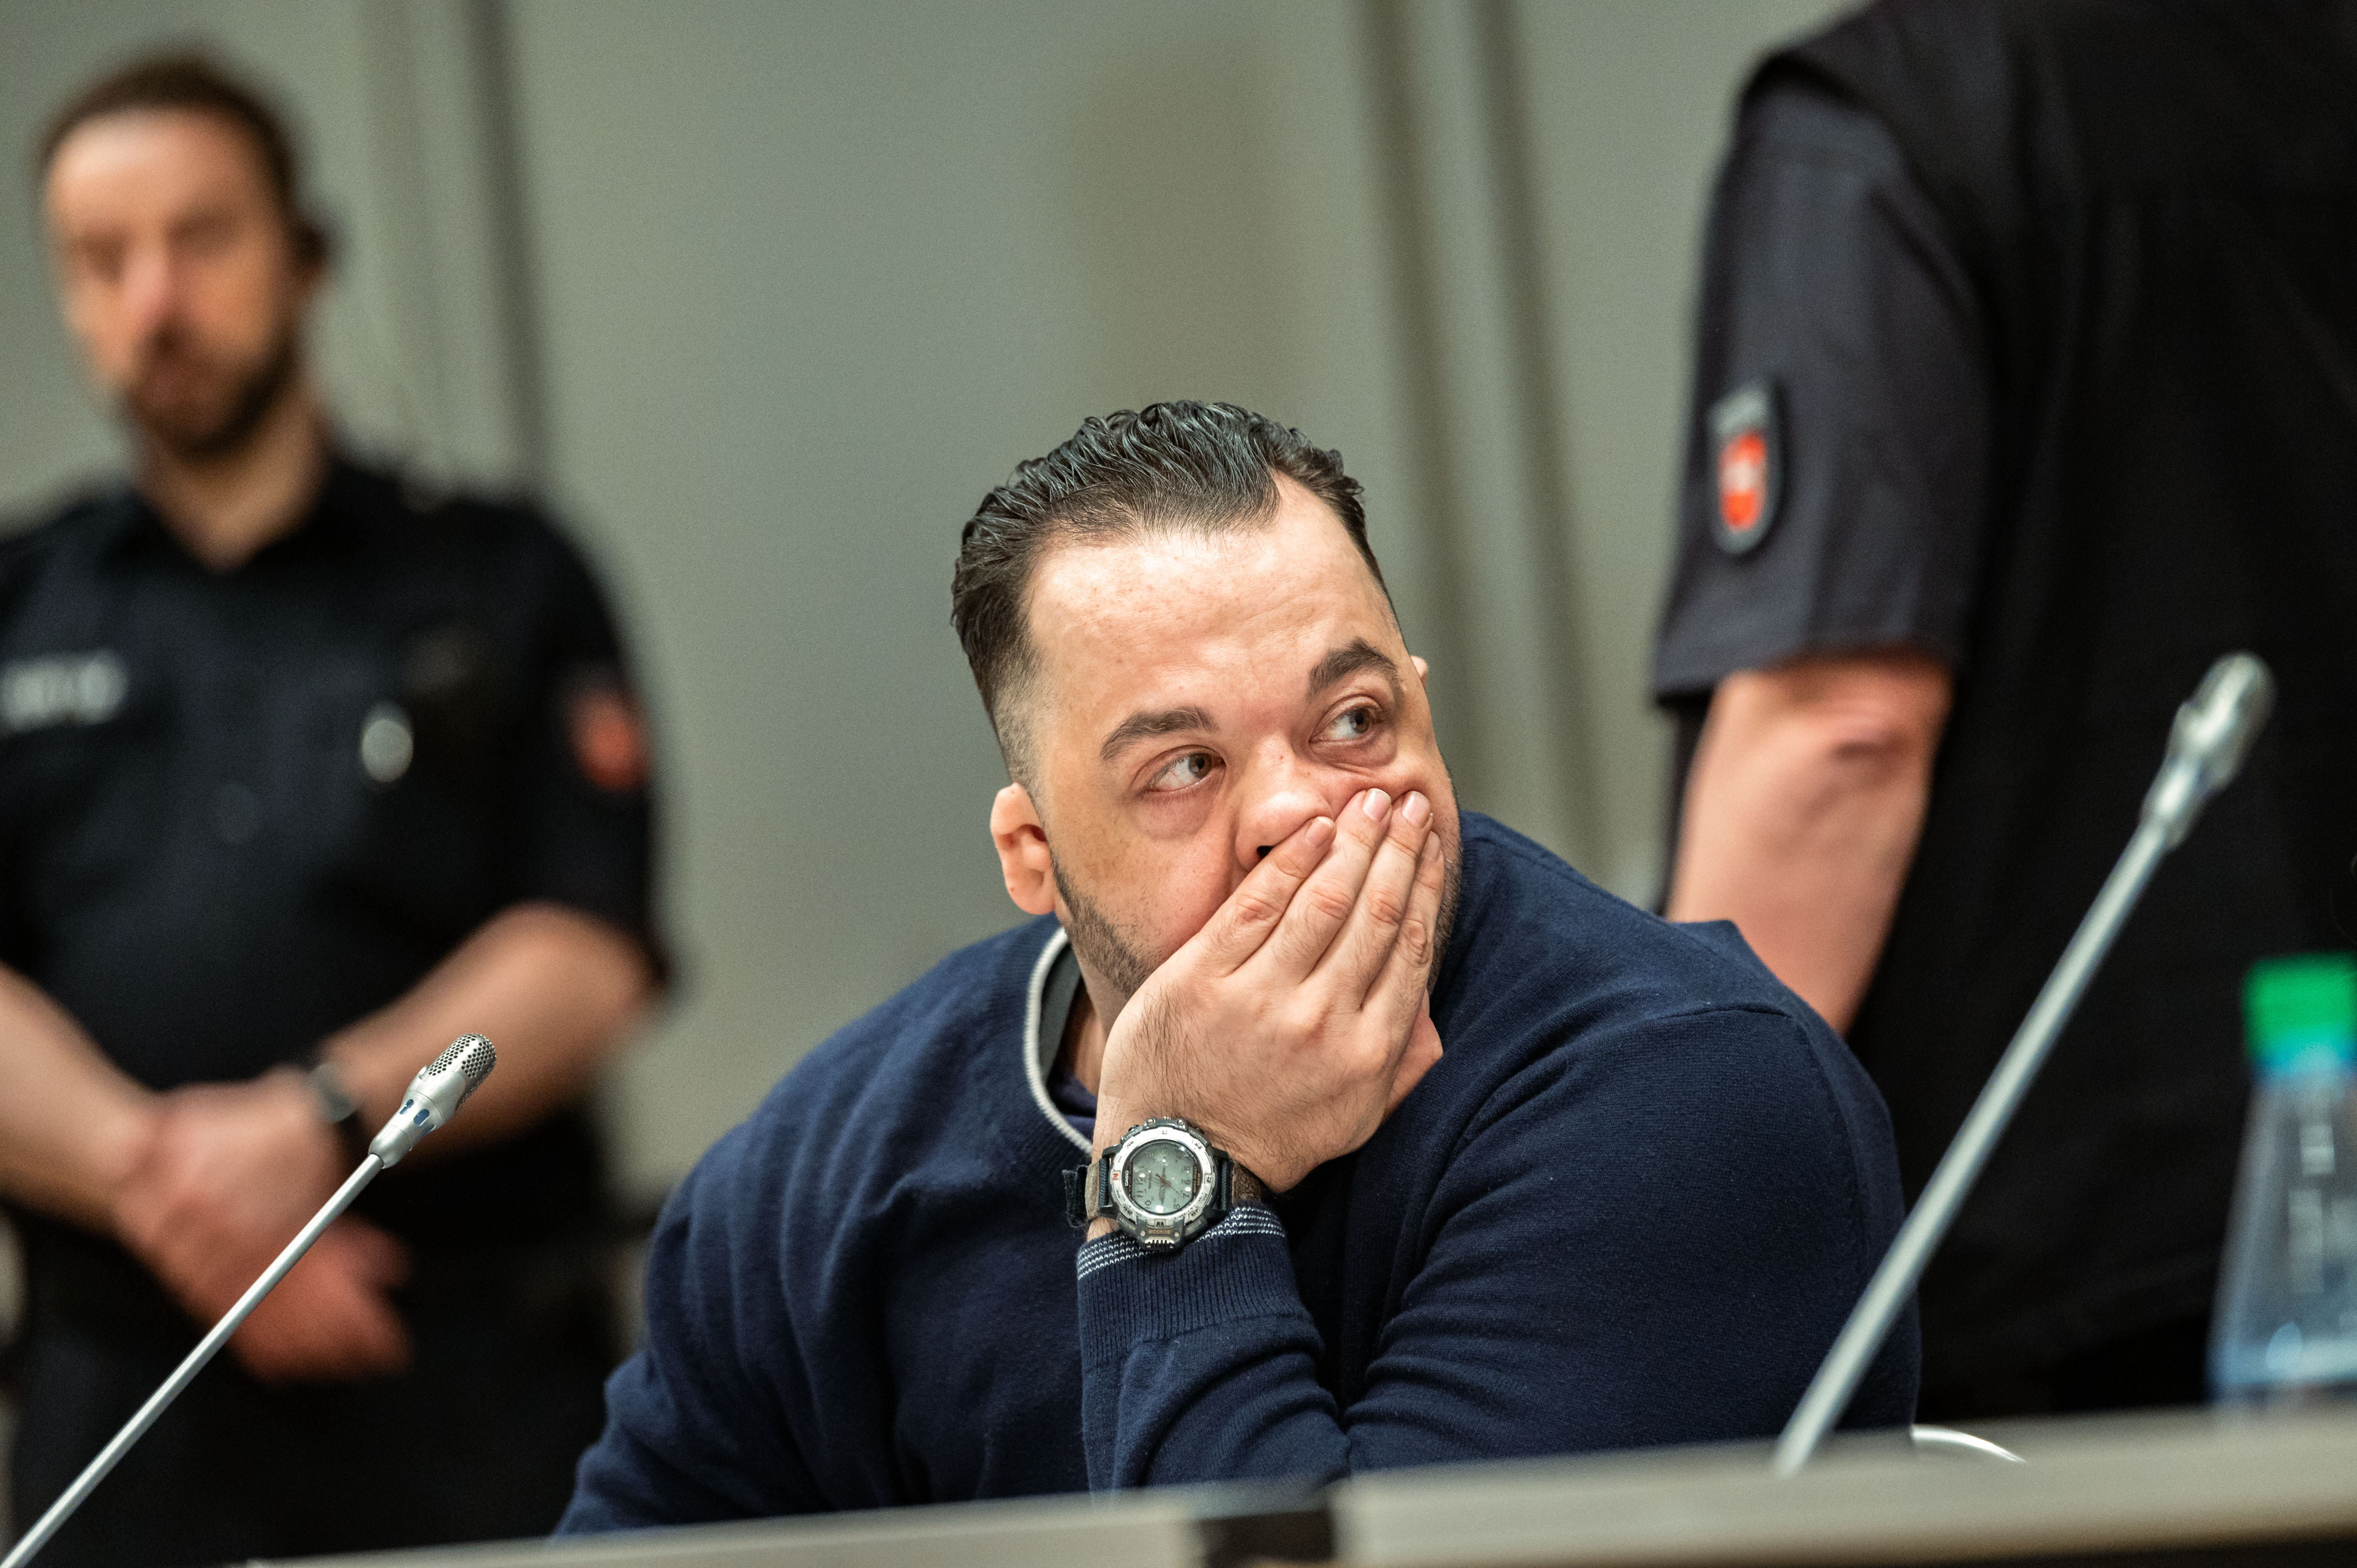 German killer nurse given 2nd life sentence for murdering 85 patients